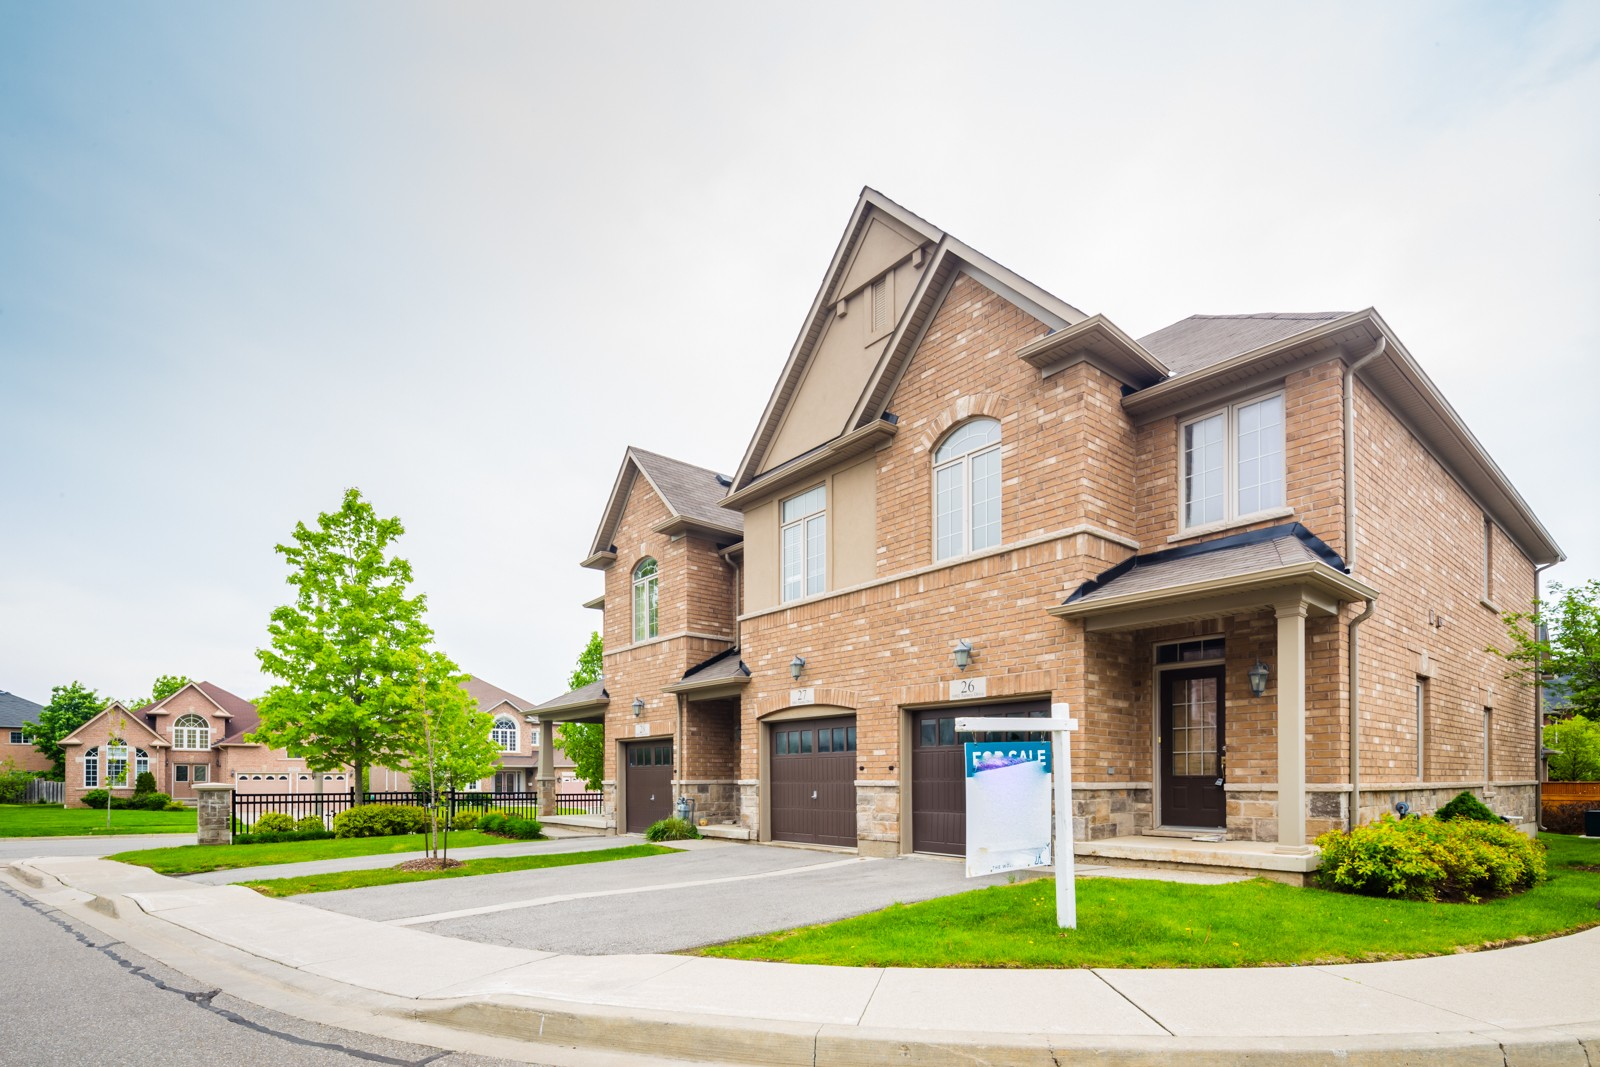 5988 Turney Dr Townhouses at 5988 Turney Dr, Mississauga 1